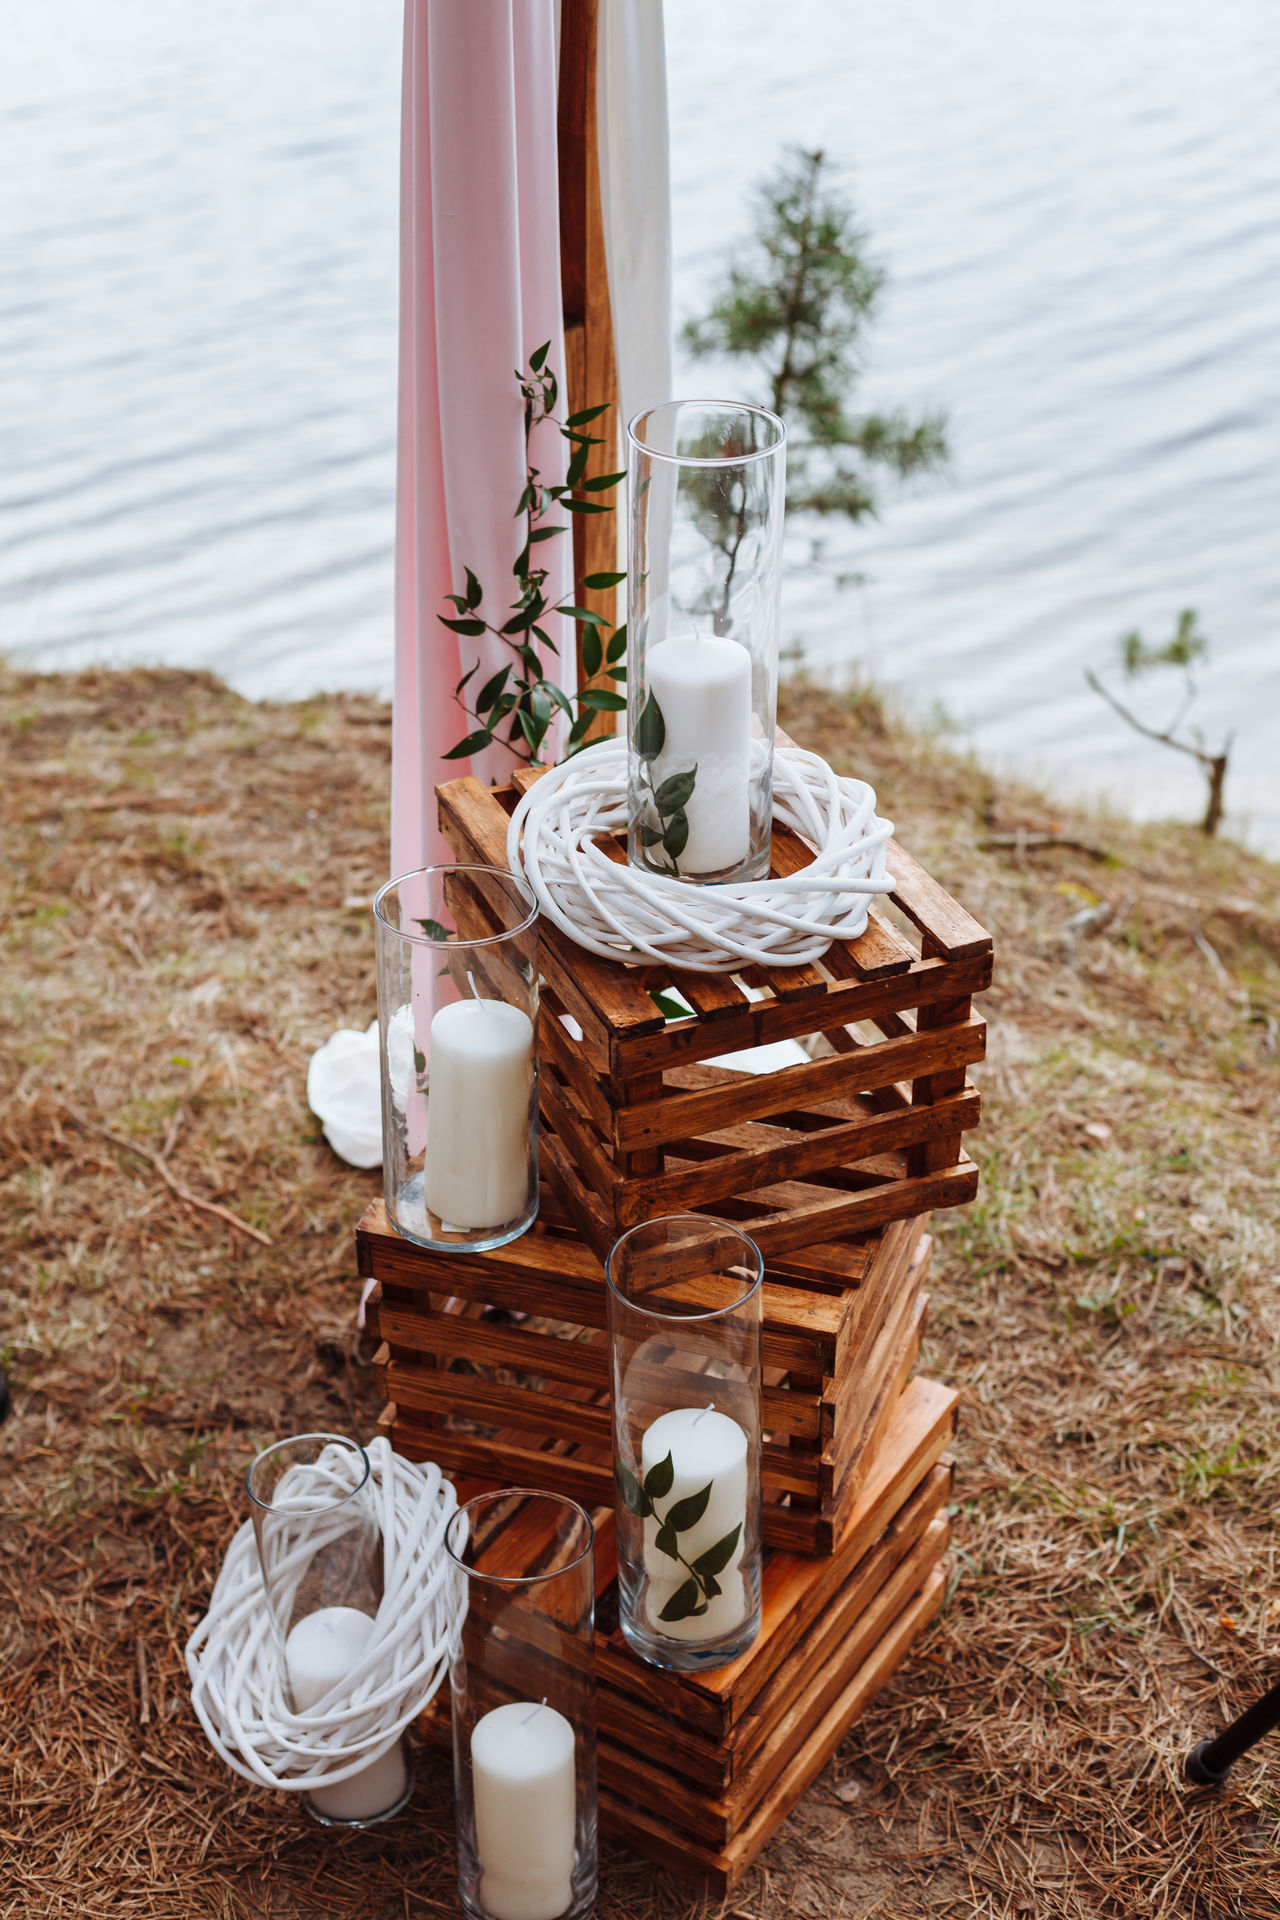 Close-up Day Decor Decoration Grass No People Outdoors Rustic Rustic Style Tree Water Wedding Ceremony